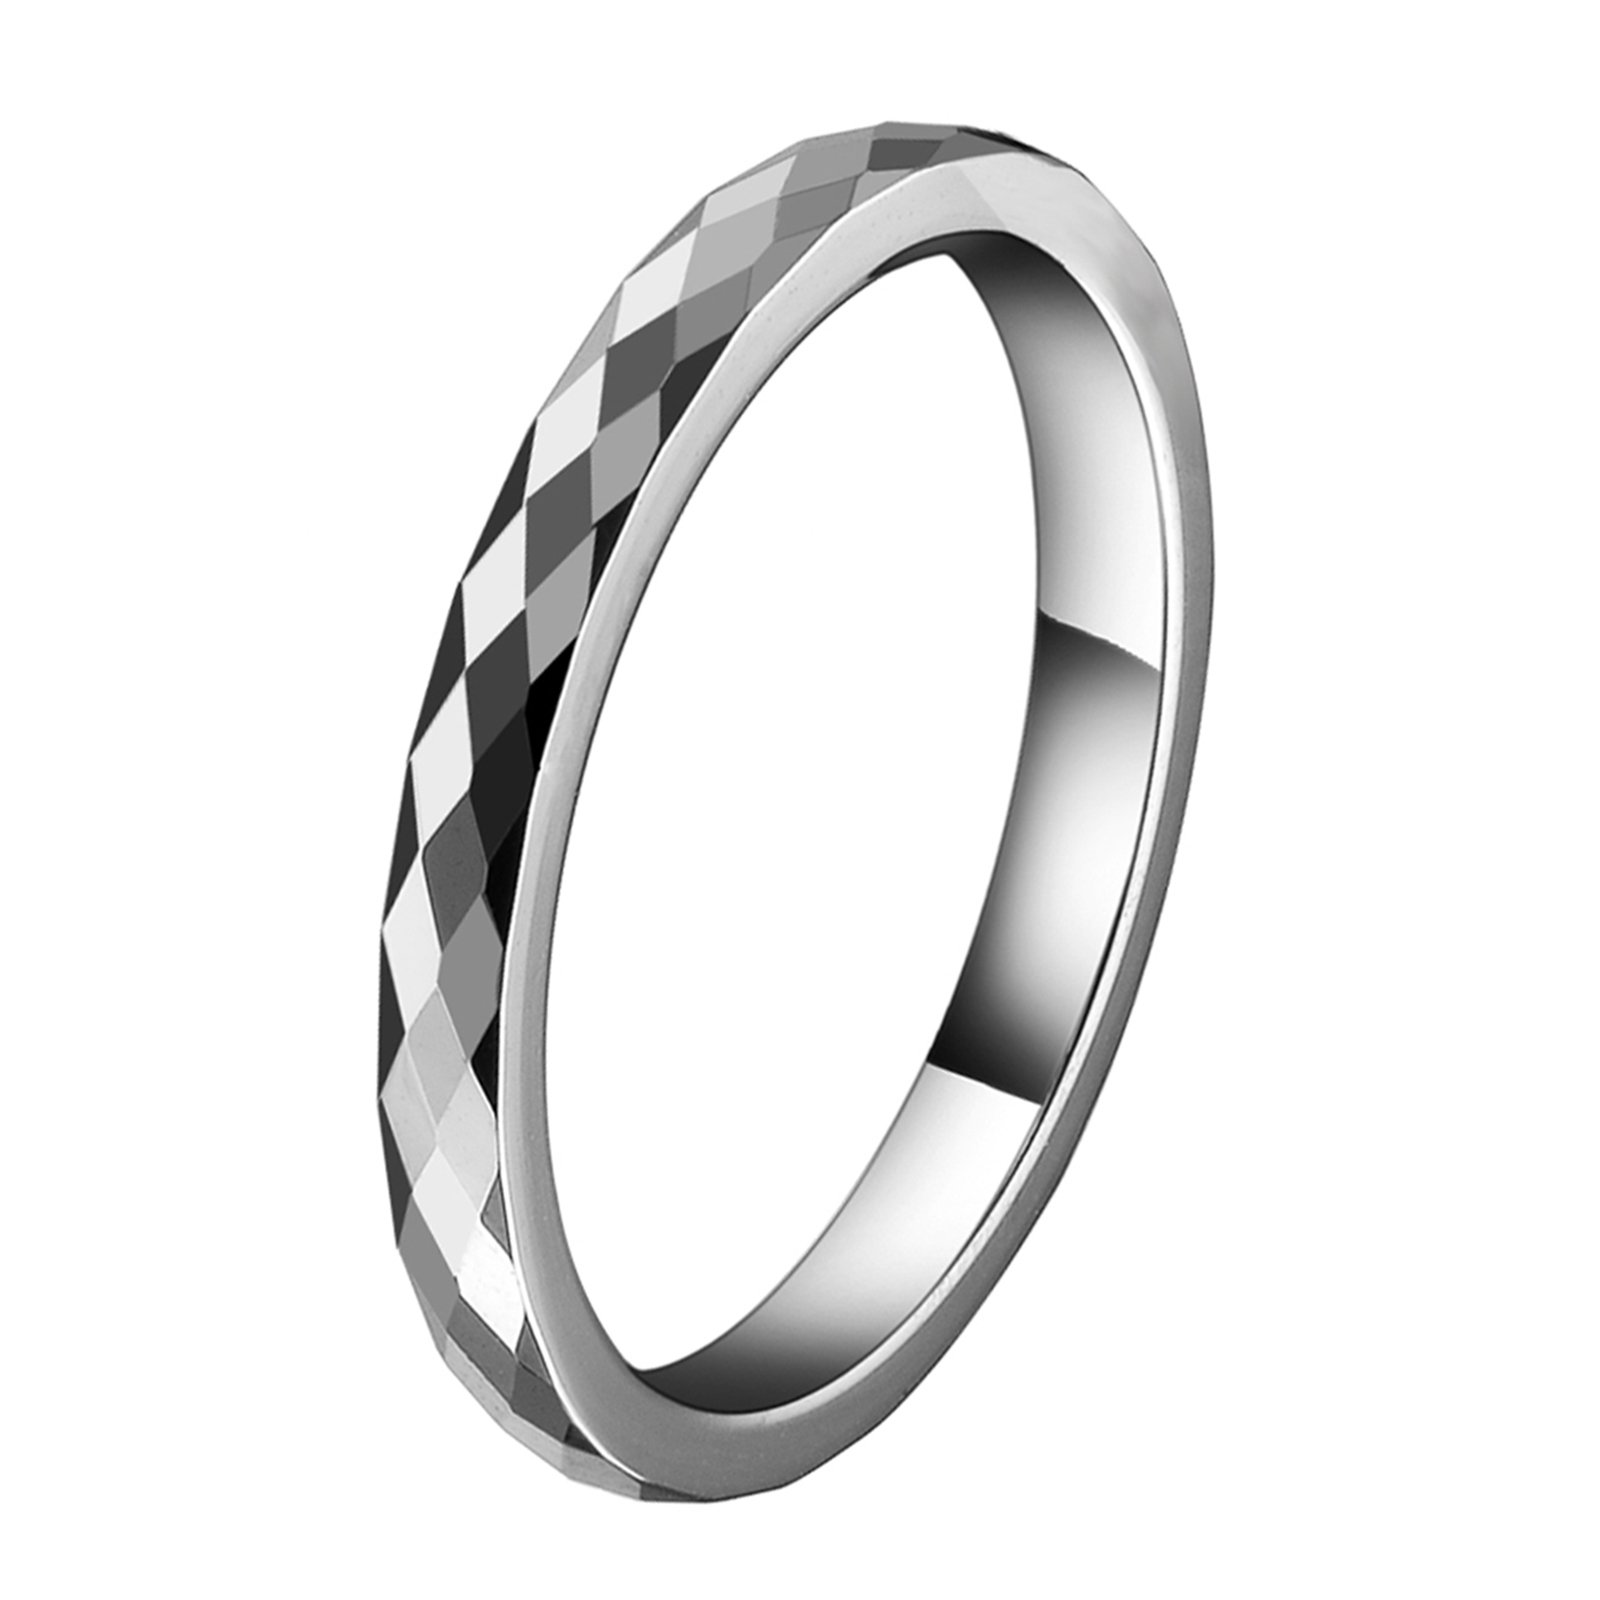 AW Tungsten Wedding Band Ring - 2mm Women's Multi-Faceted Comfort Fit Engagement Anniversary Ring, Size 10